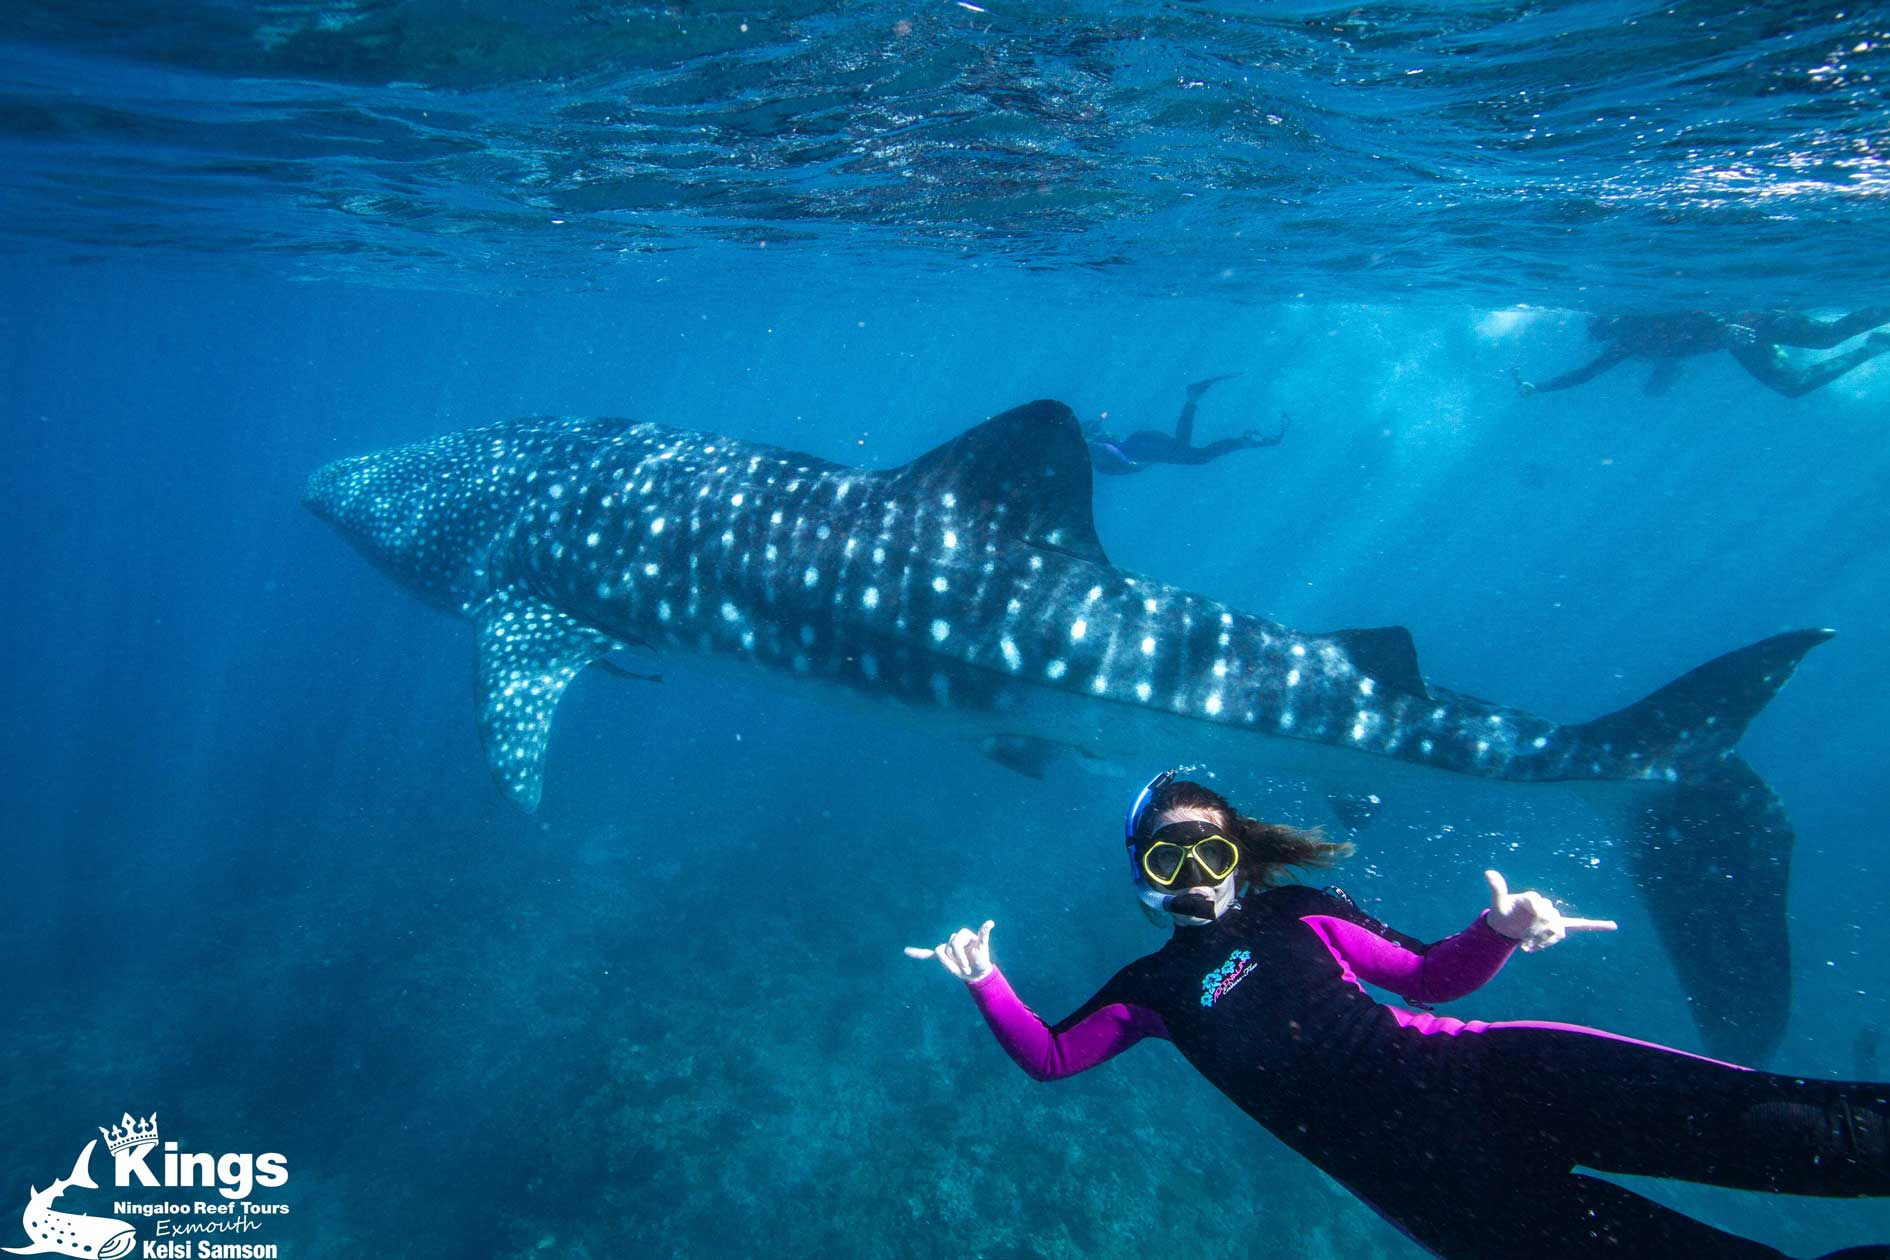 Swim or snorkel with Whale sharks in Exmouth, Ningaloo Reef. A girl swims with a Whale shark on tour with Kings Ningaloo Reef in clear blue water